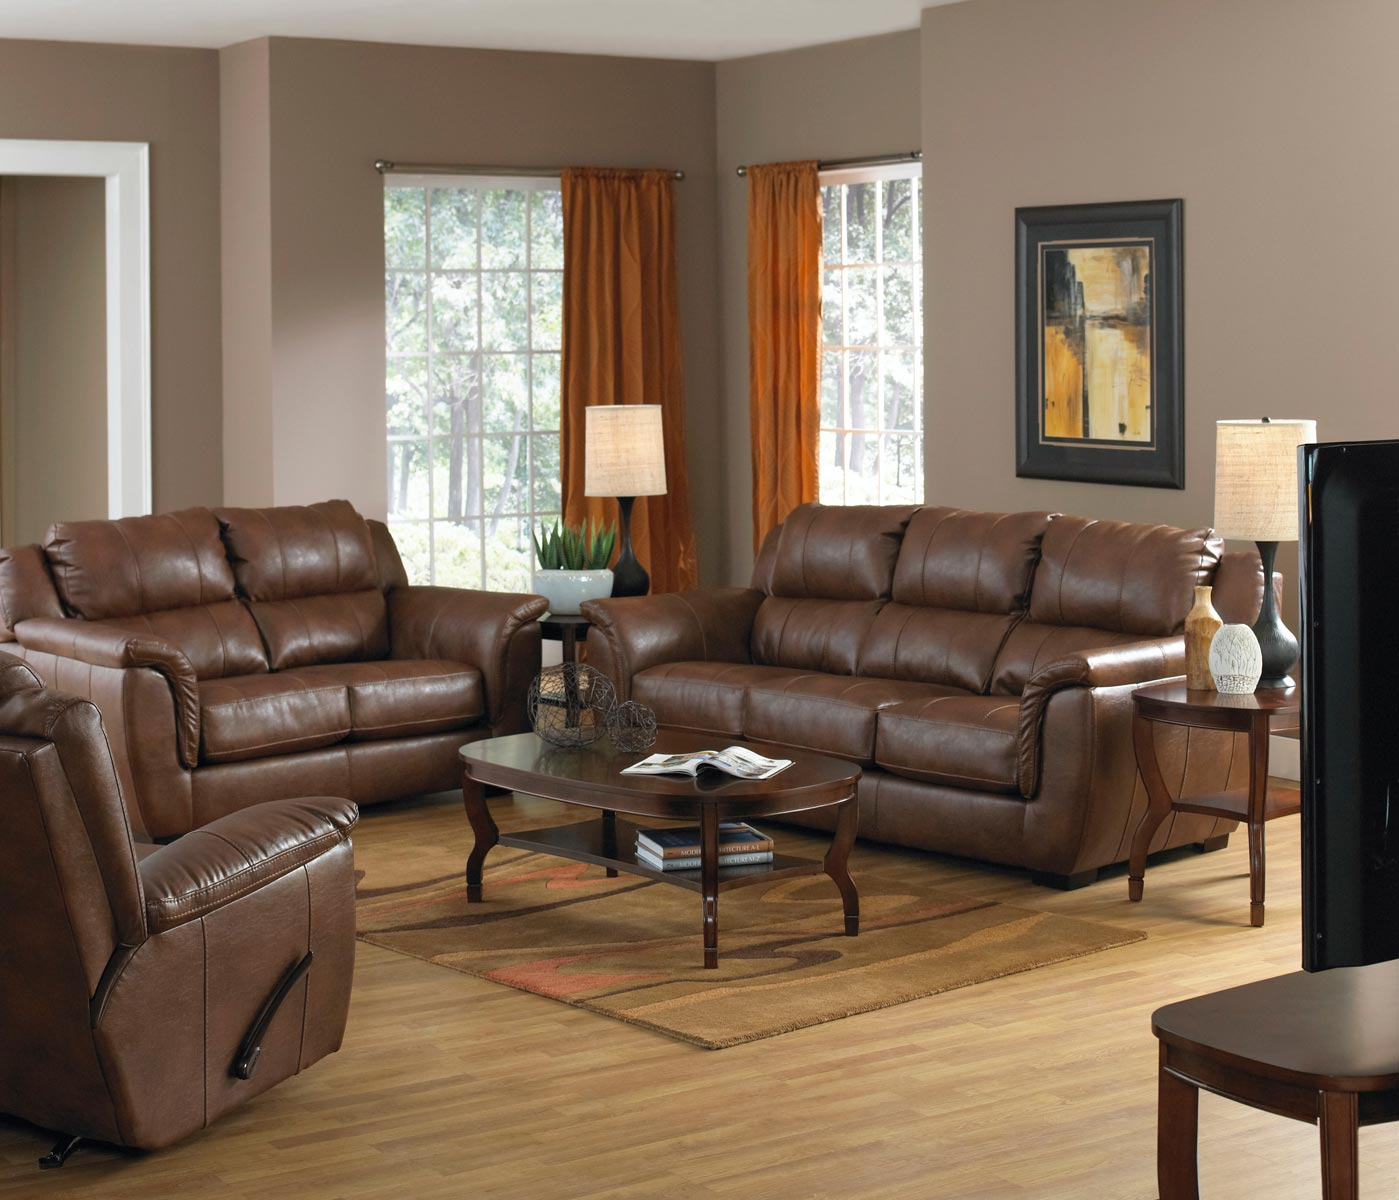 Jackson Verona Leather Sofa Set Chestnut Jf 4490 1223 09 Set  # Muebles Seys Verona